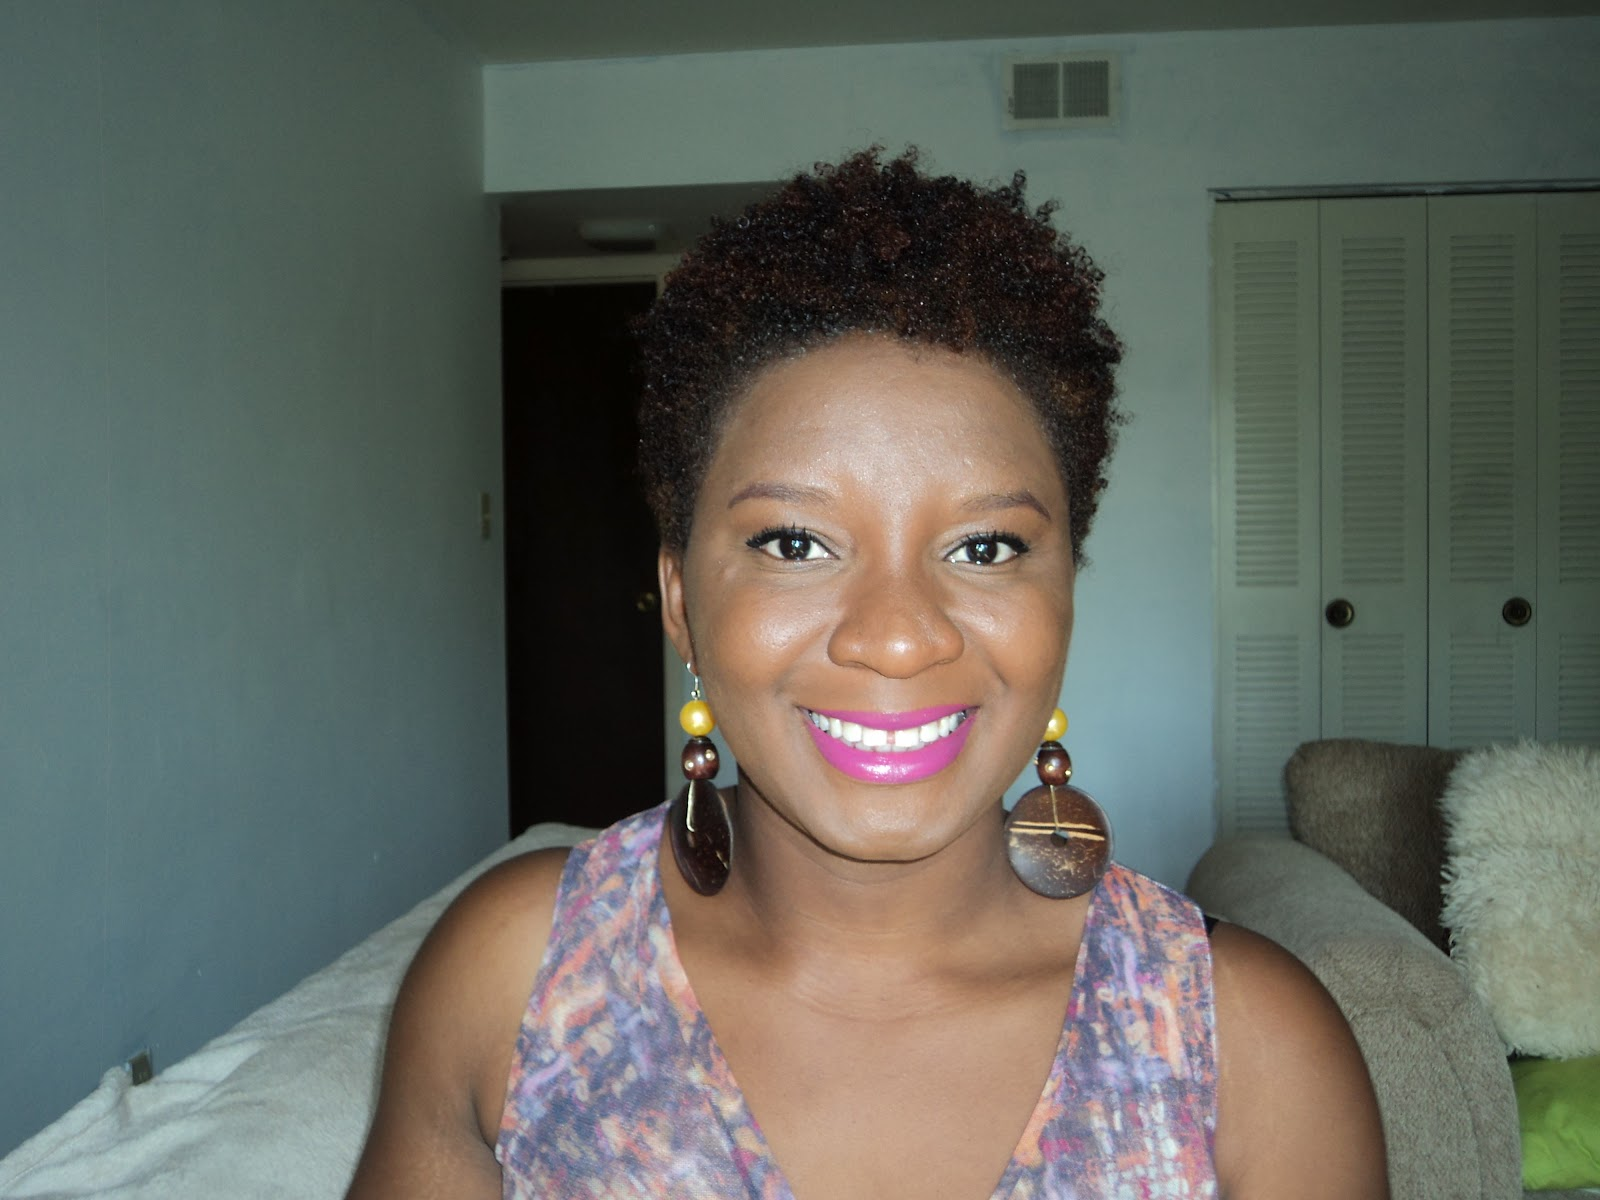 Style Natural Hair: I Abandoned Protective Styling So I Could Have More Fun